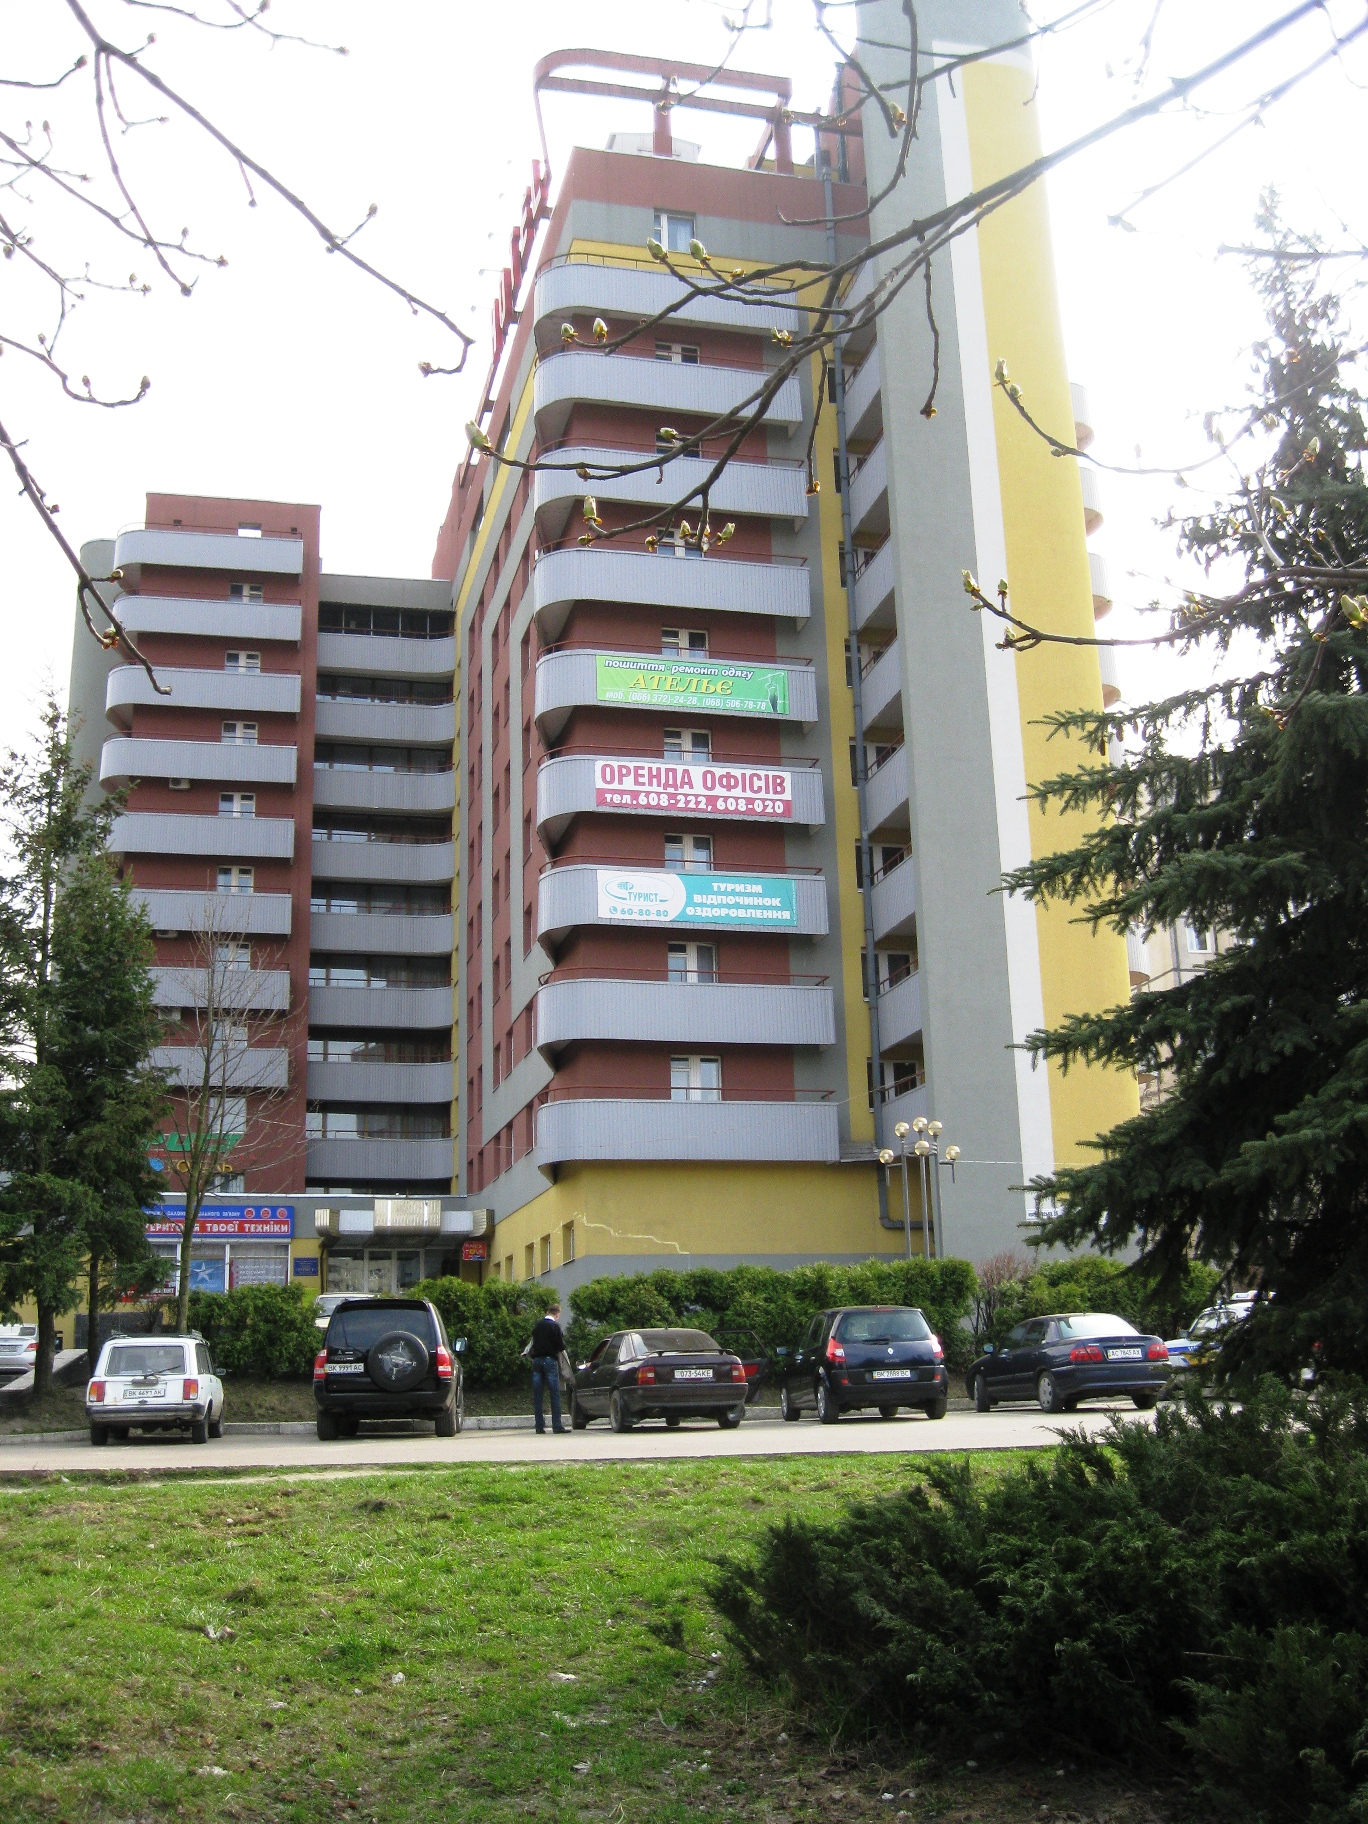 Hotels in Rivne and region: a selection of sites